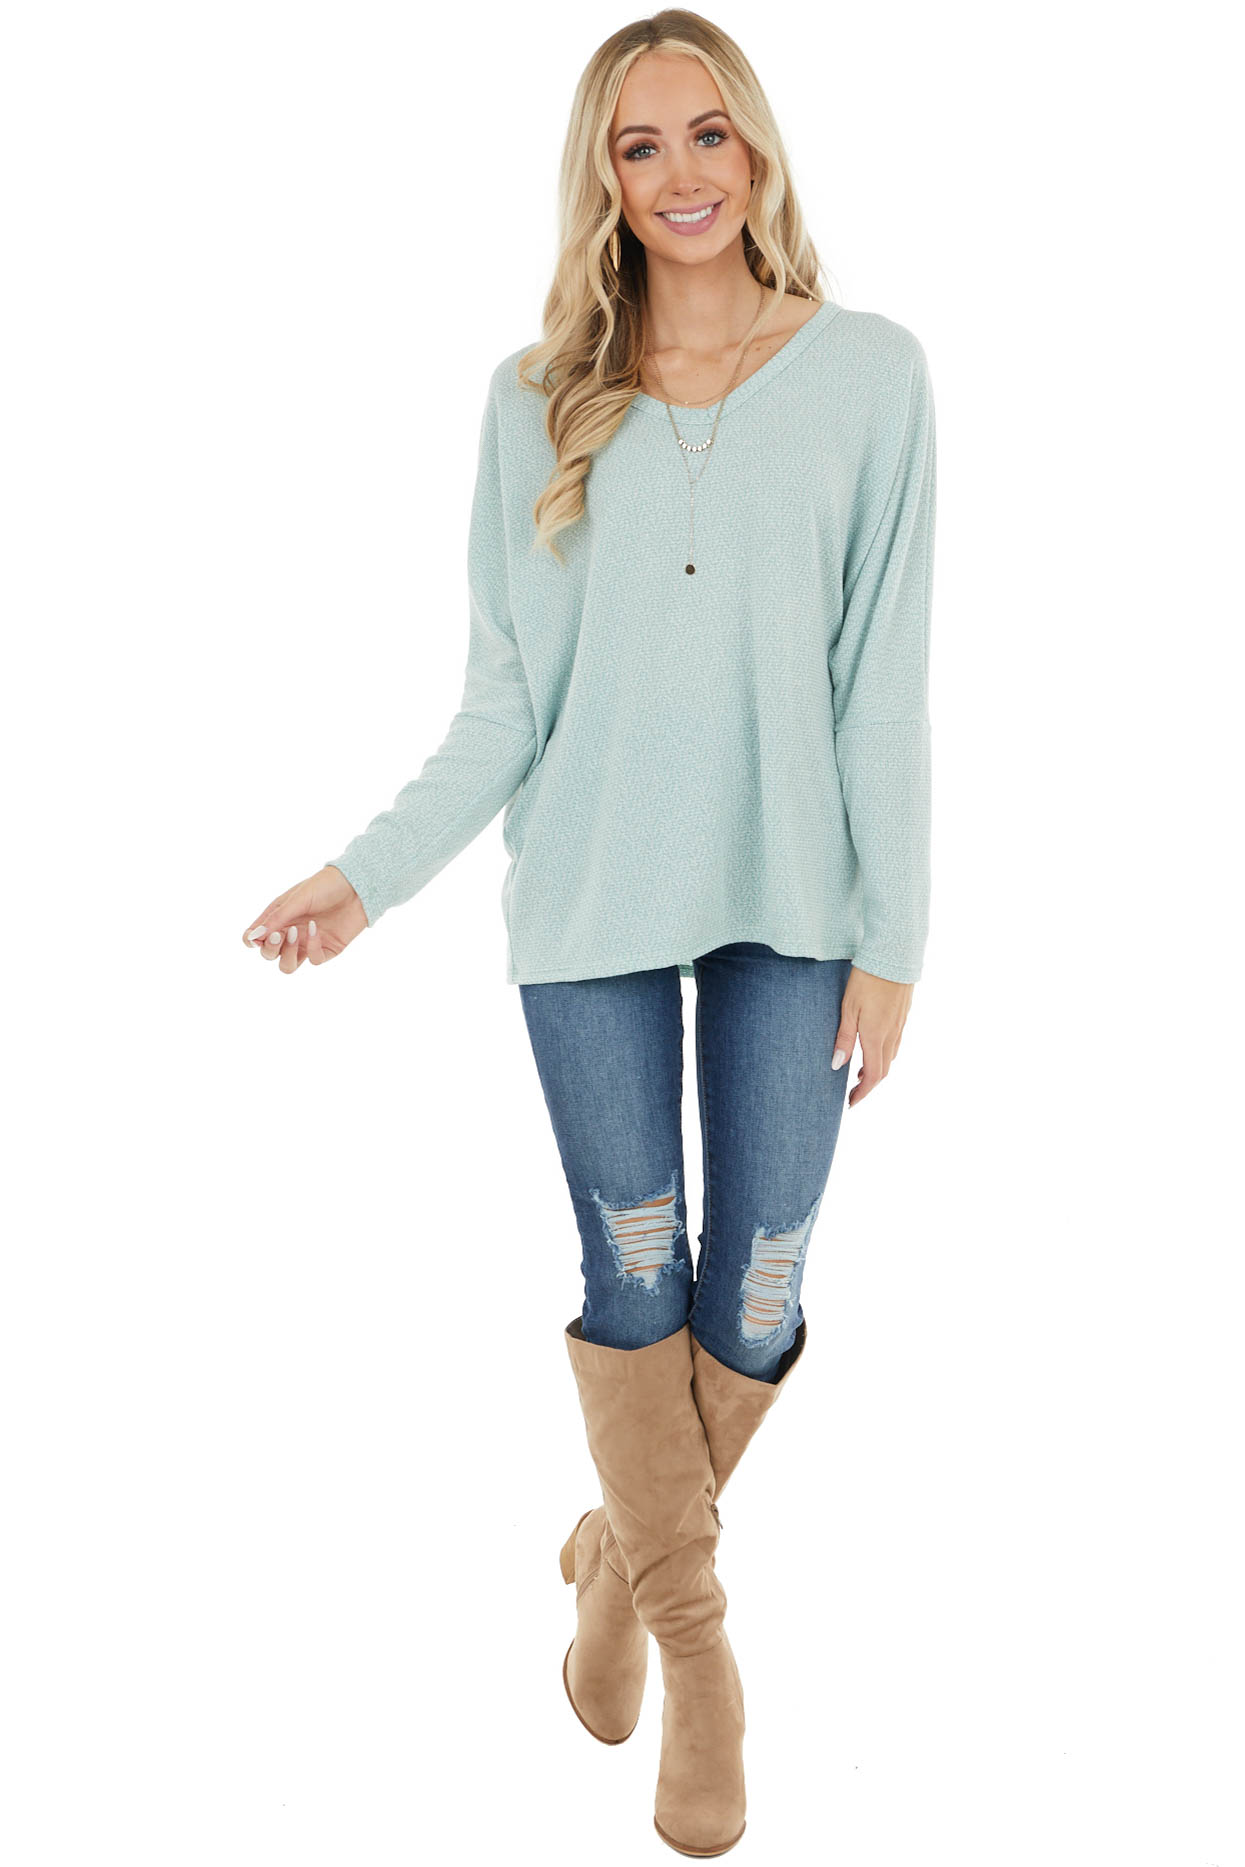 Heathered Teal V Neck Knit Top with Long Dolman Sleeves